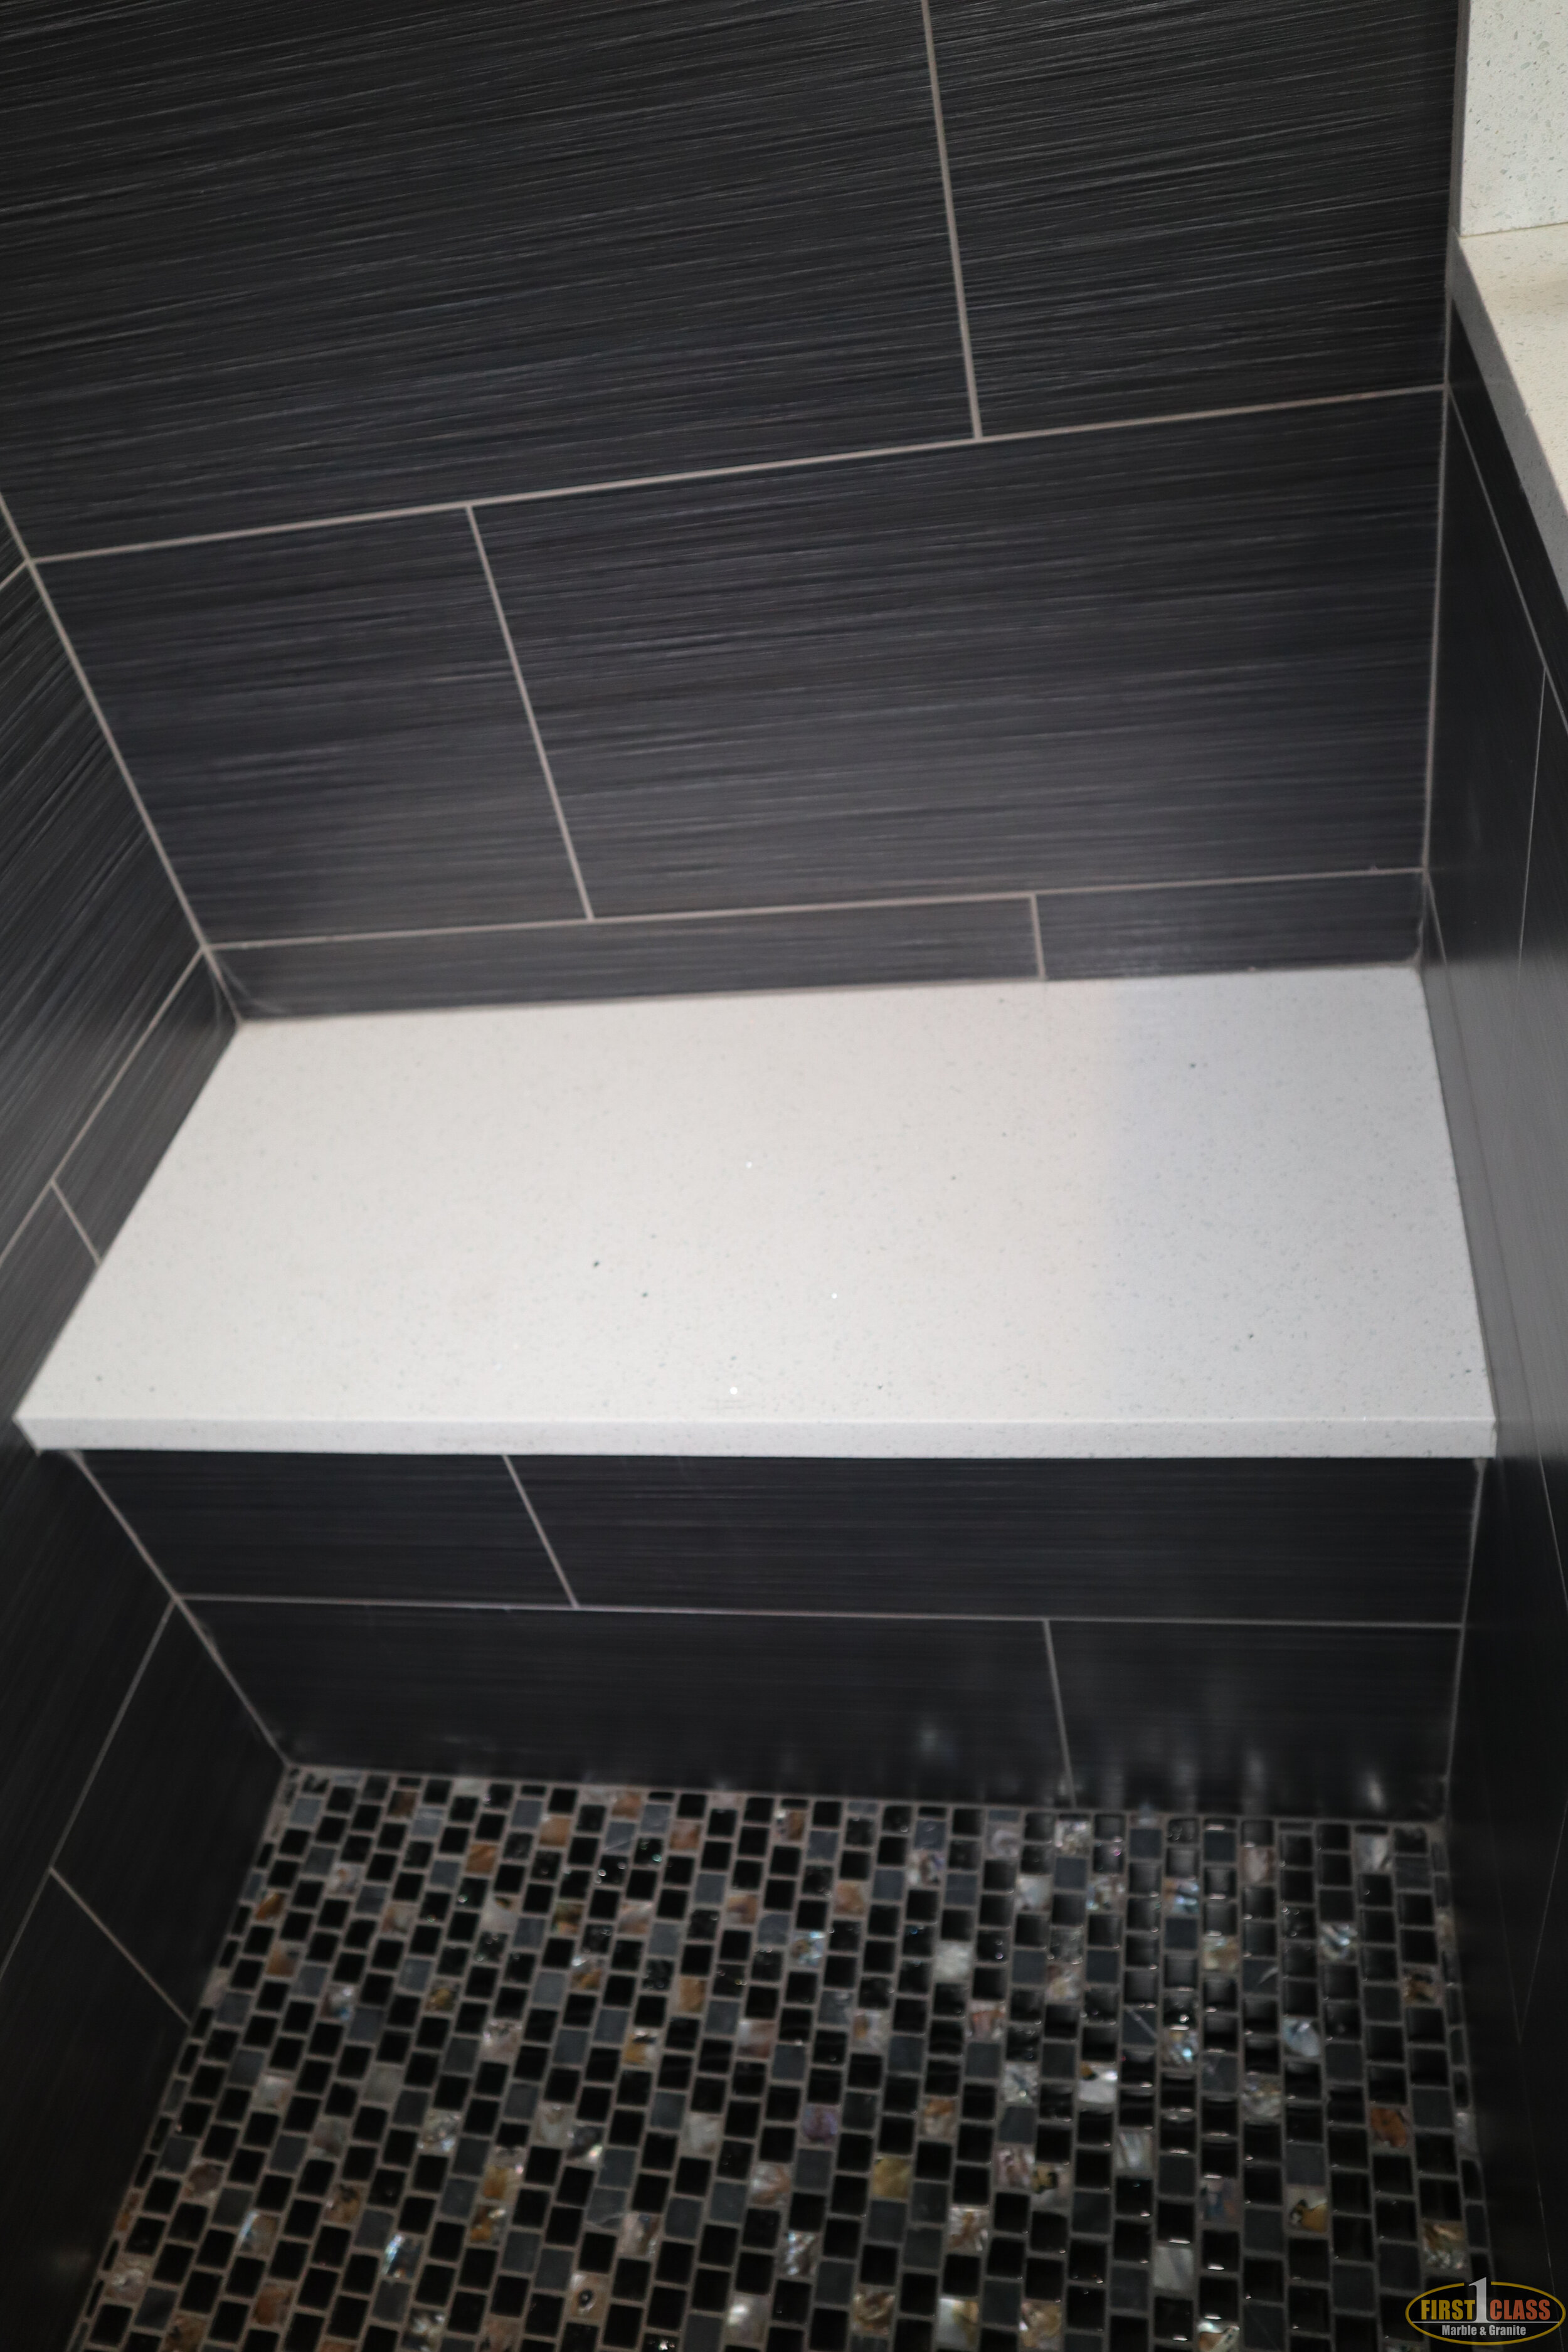 On-Suite Shower Seat  Material: Q-MSI Sparkling White  Thickness, Finish & Stone Type: 3CM Polished Quartz  Edge: Eased